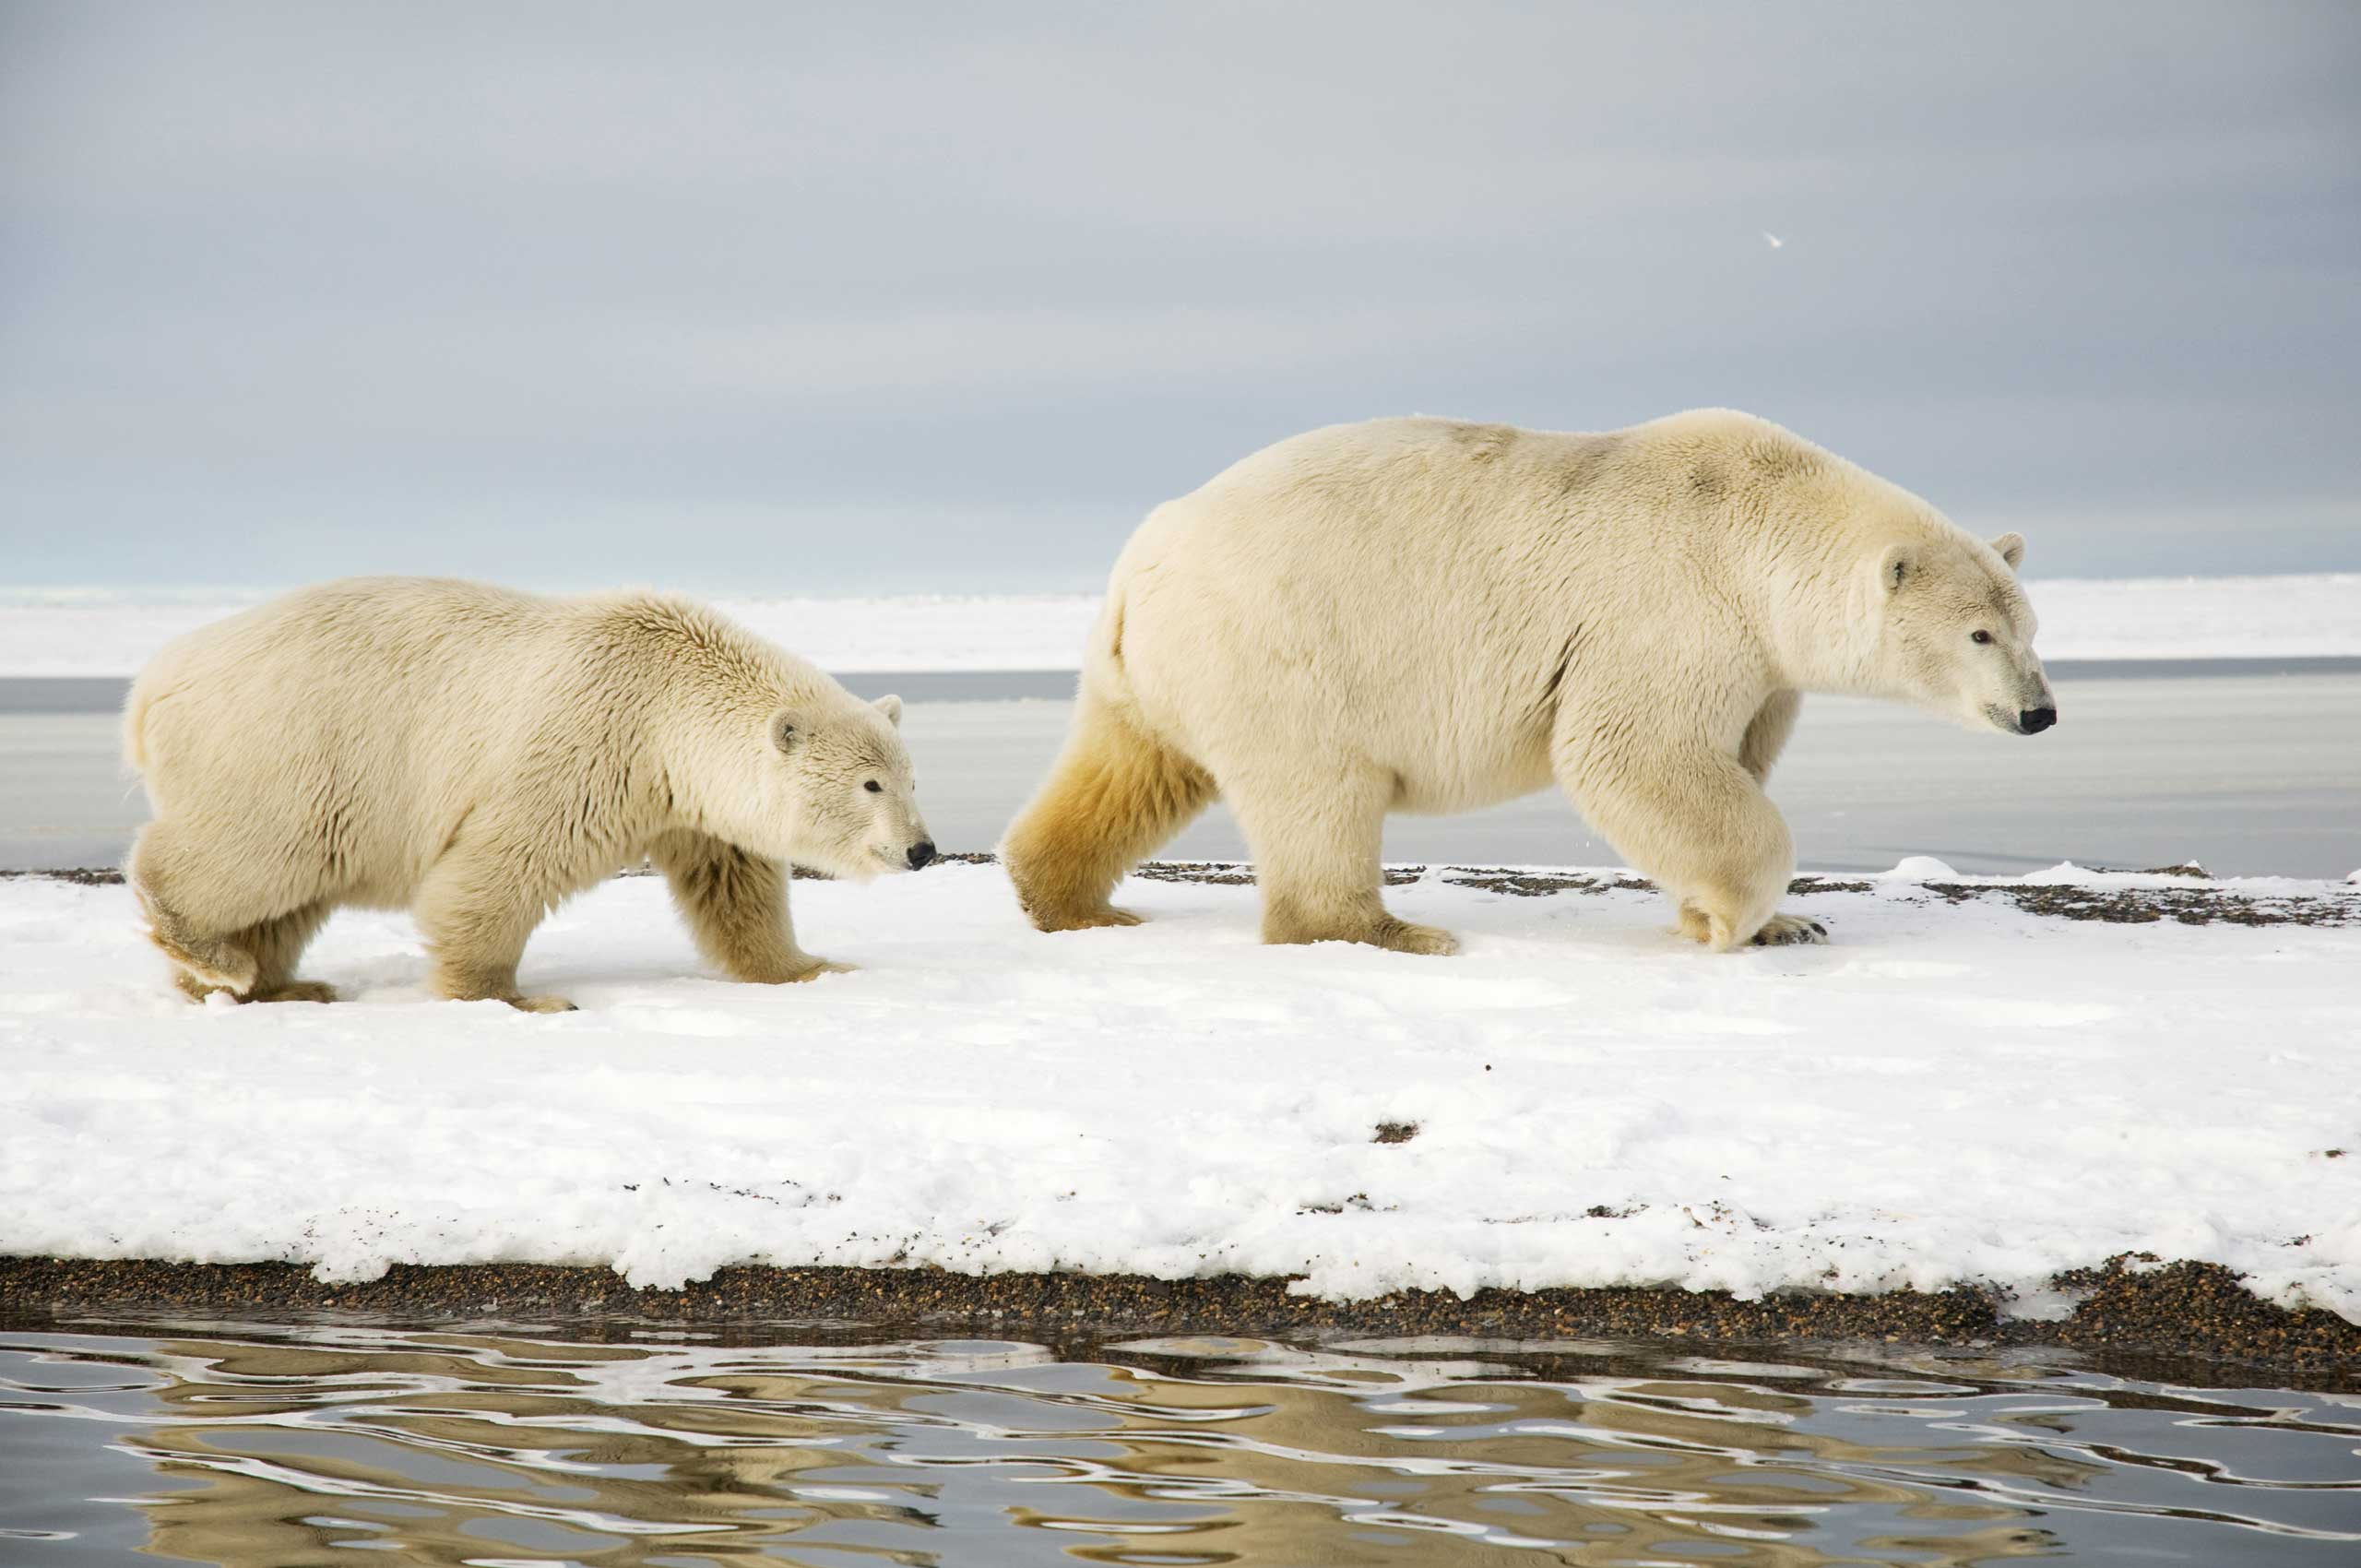 More than 50 polar bears have been spotted near the town of Belushya Guba, Russia